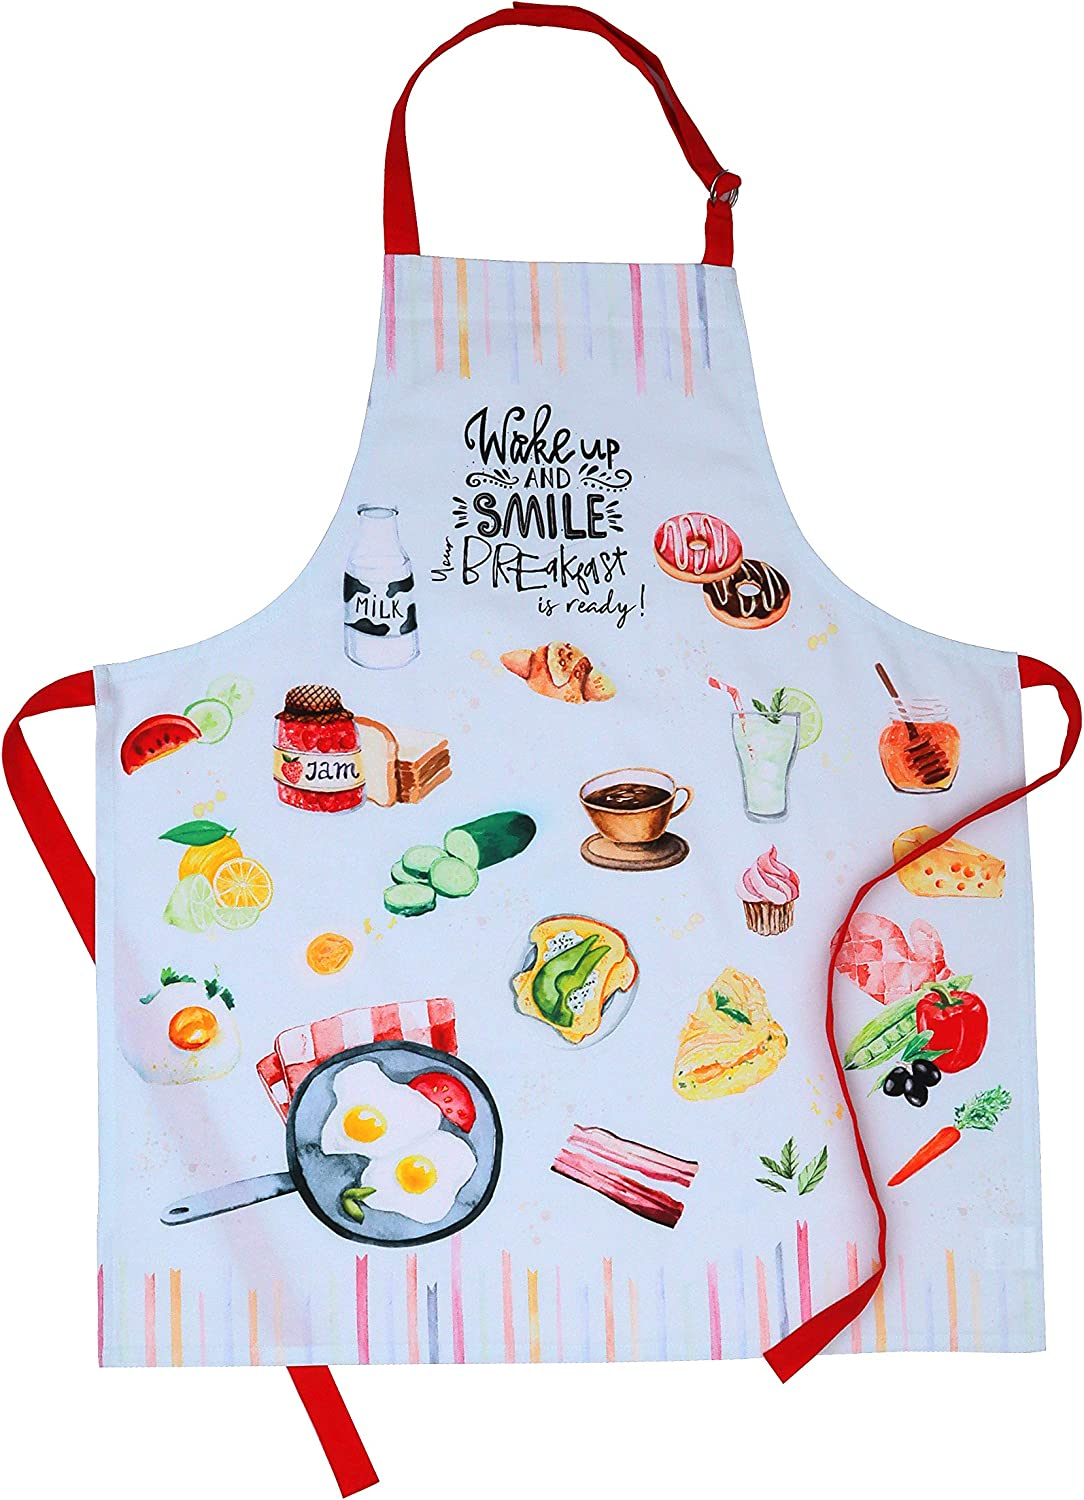 Womens Apron for Cooking Baking and Adjustable Strap at Neck /& Waist Ties AMOUR INFINI Breakfast Apron 100/% Natural Cotton Gardening 27.5 x 33 inches Convenient Pockets